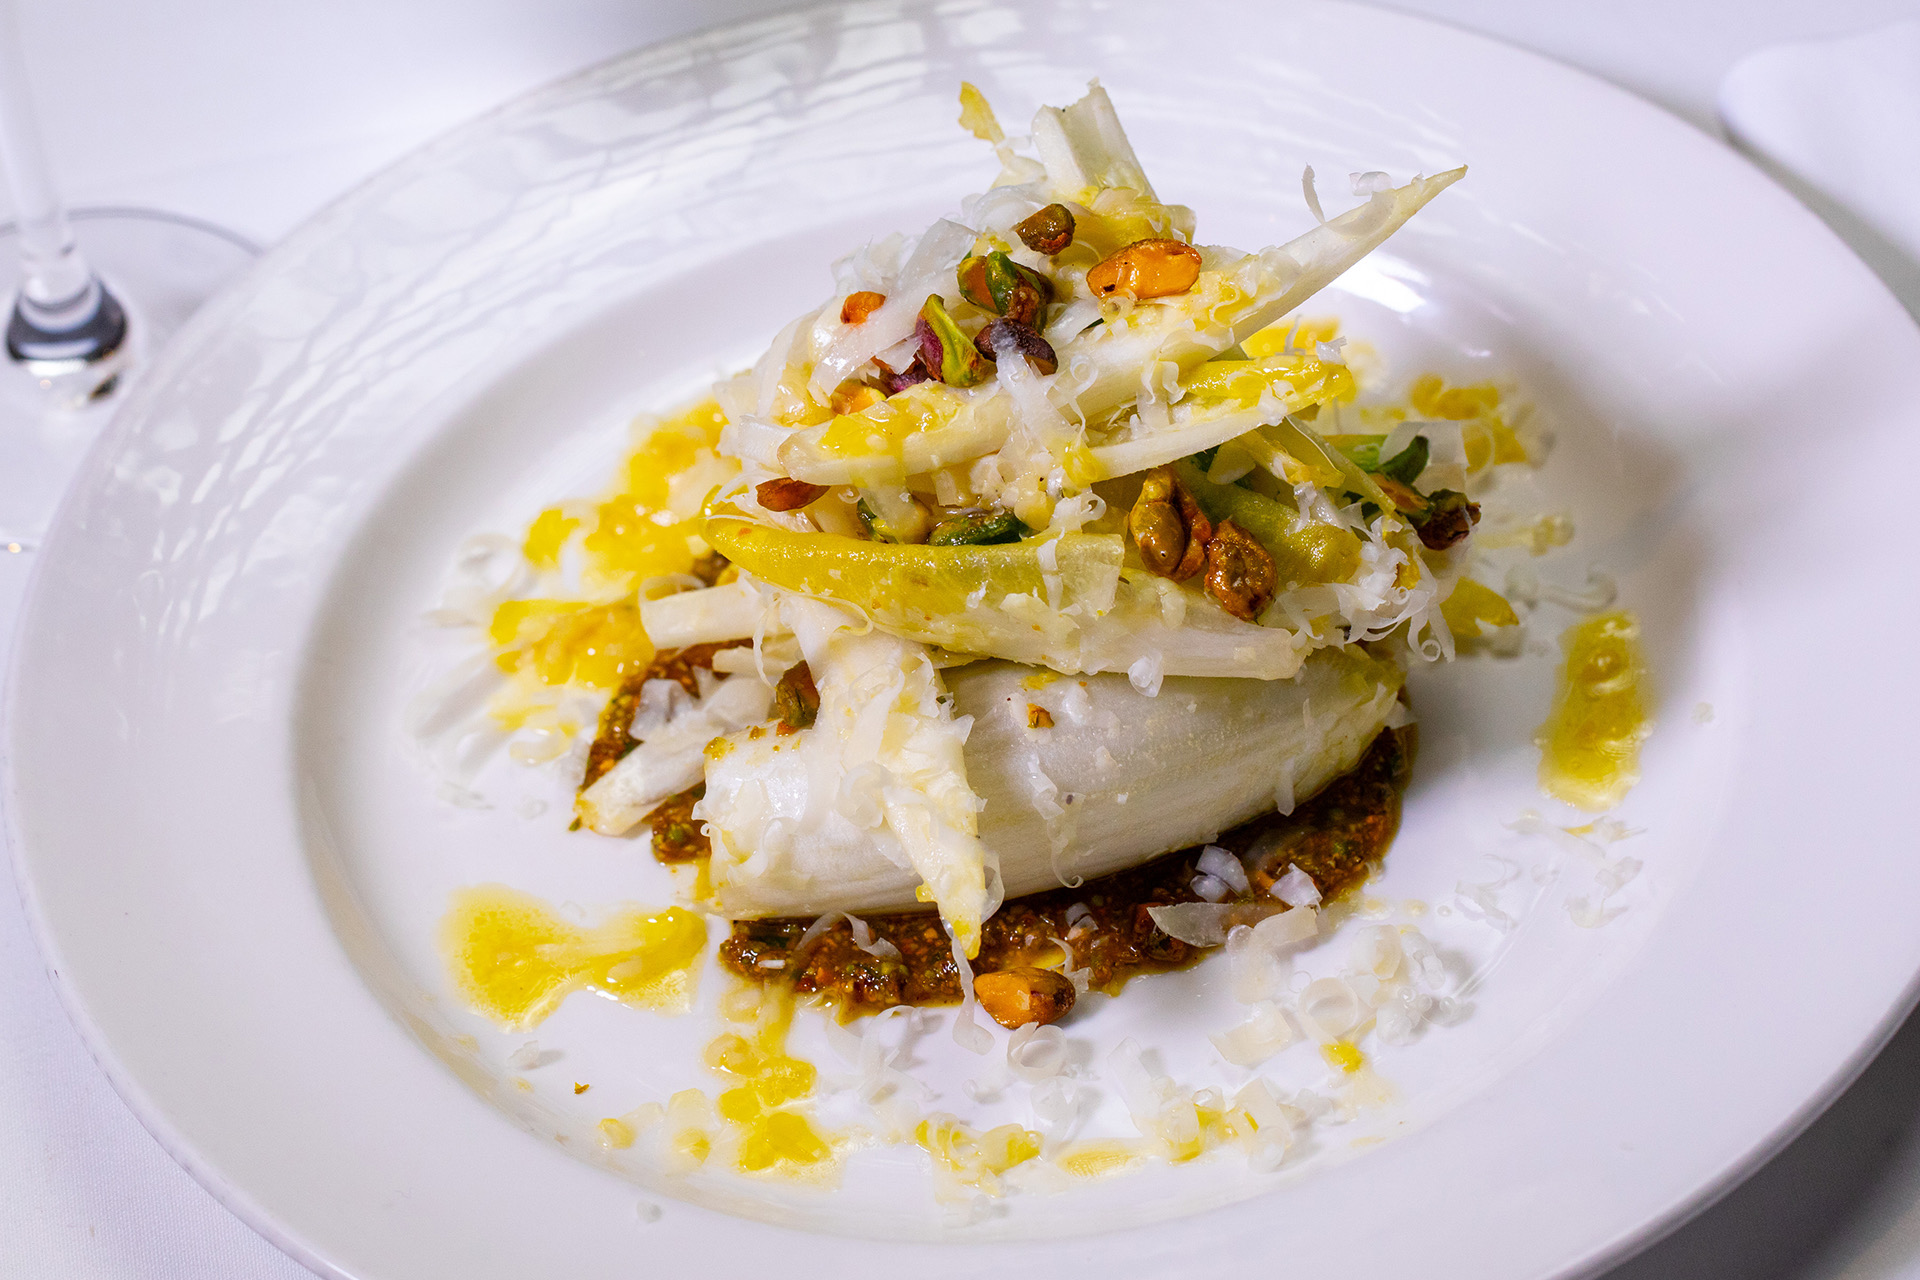 Endive Sala with Avocado Piave and Pistachio Aillade